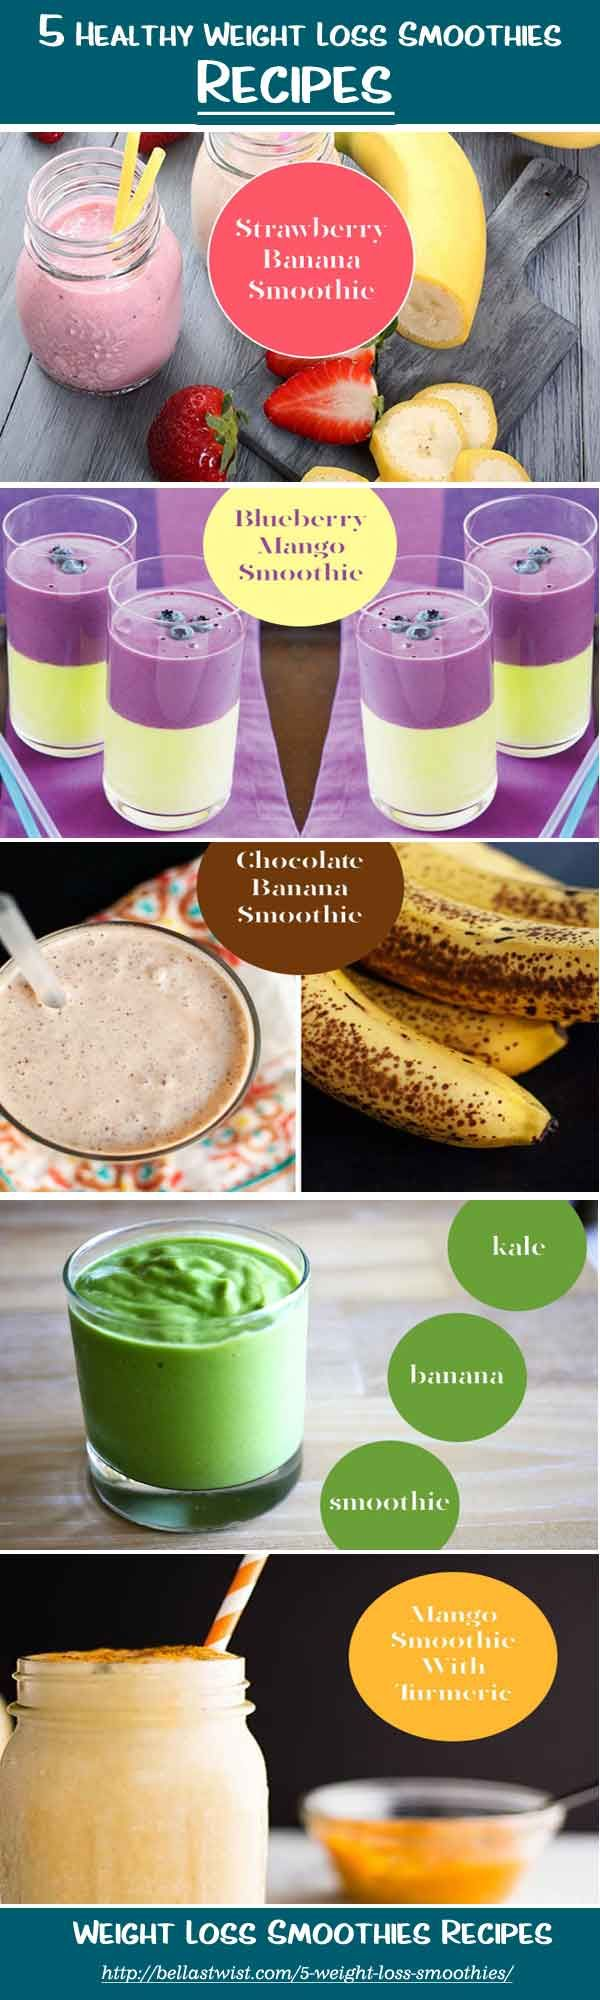 These delicious healthy weight loss smoothie recipes easily to make at home. These smoothies also help in losing weight and gives you all the nutritional ingredients required for body. #weightloss #weightloss smoothies bellyfat #weightlossplan #recipes #r